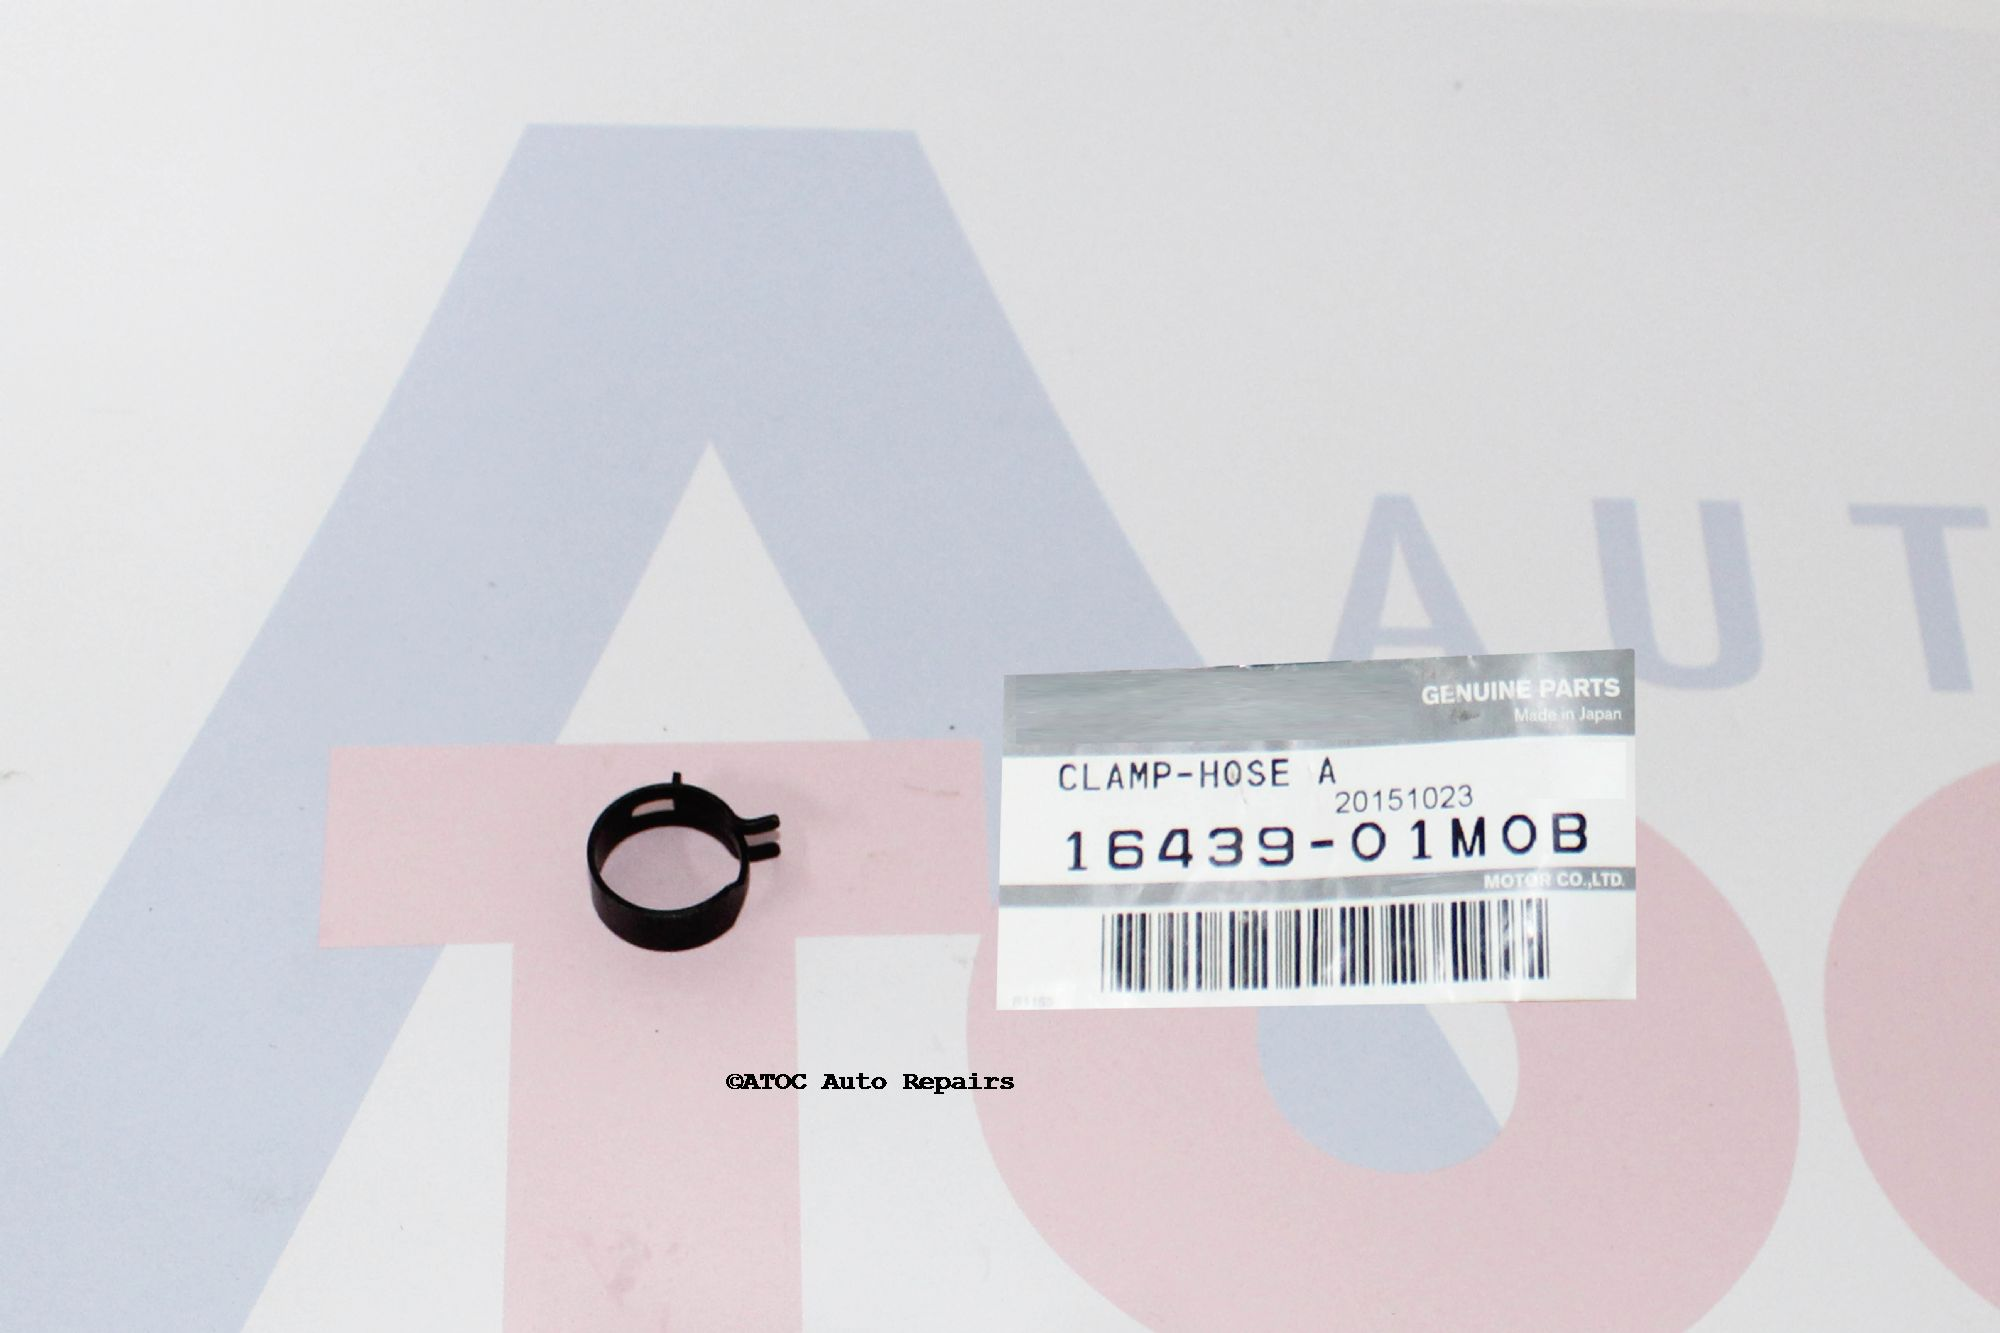 OEM Genuine hose clamp to fit Nissan TD42T & TI PCV hose small